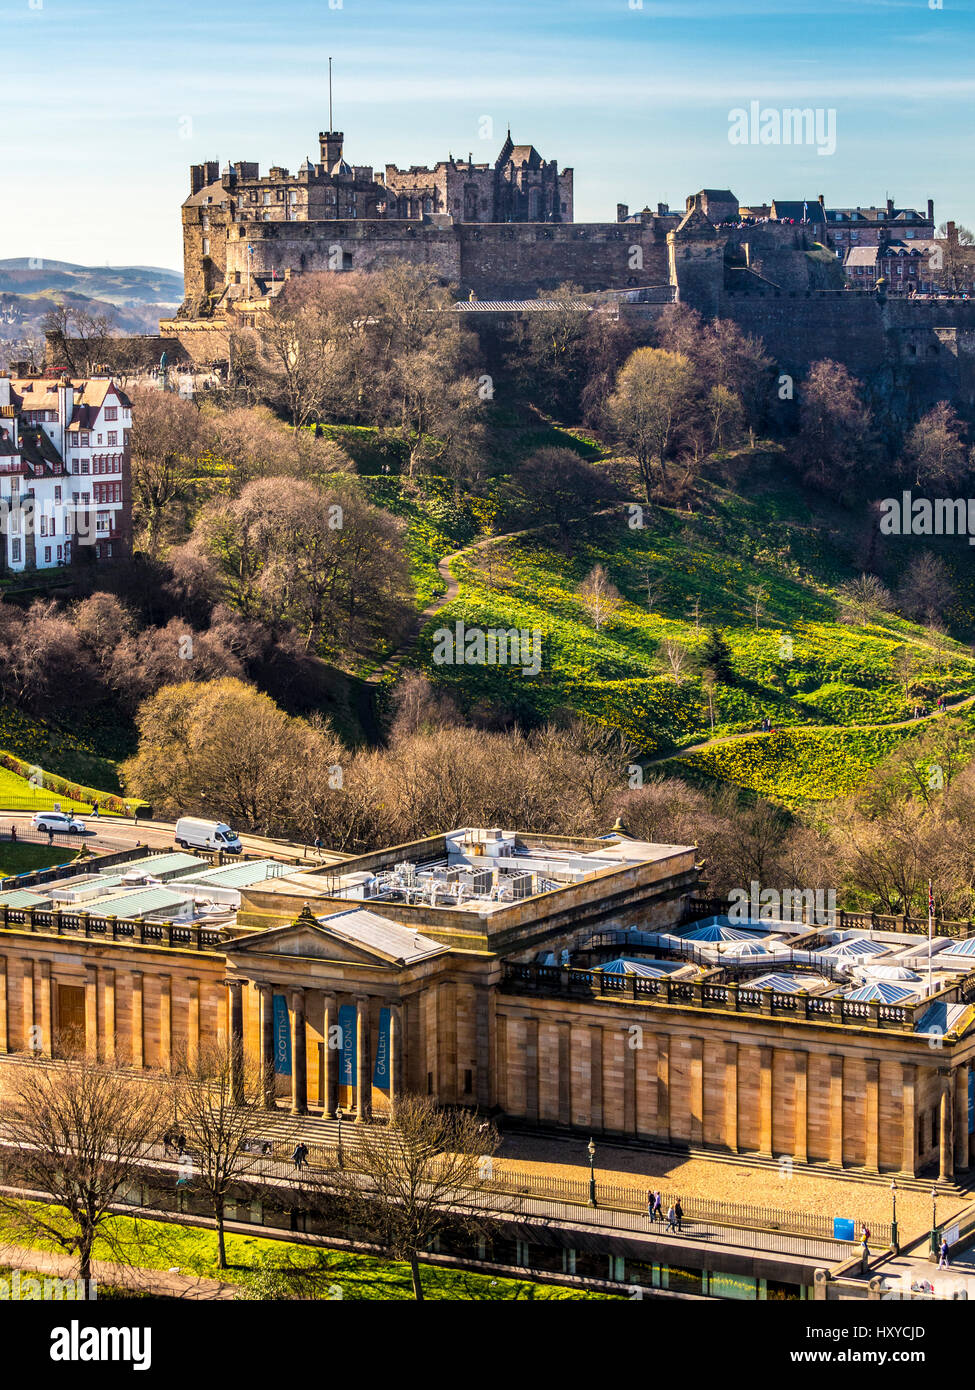 Edinburgh Castle. Scottish National Gallery, Edinburgh, Scotland, UK. - Stock Image